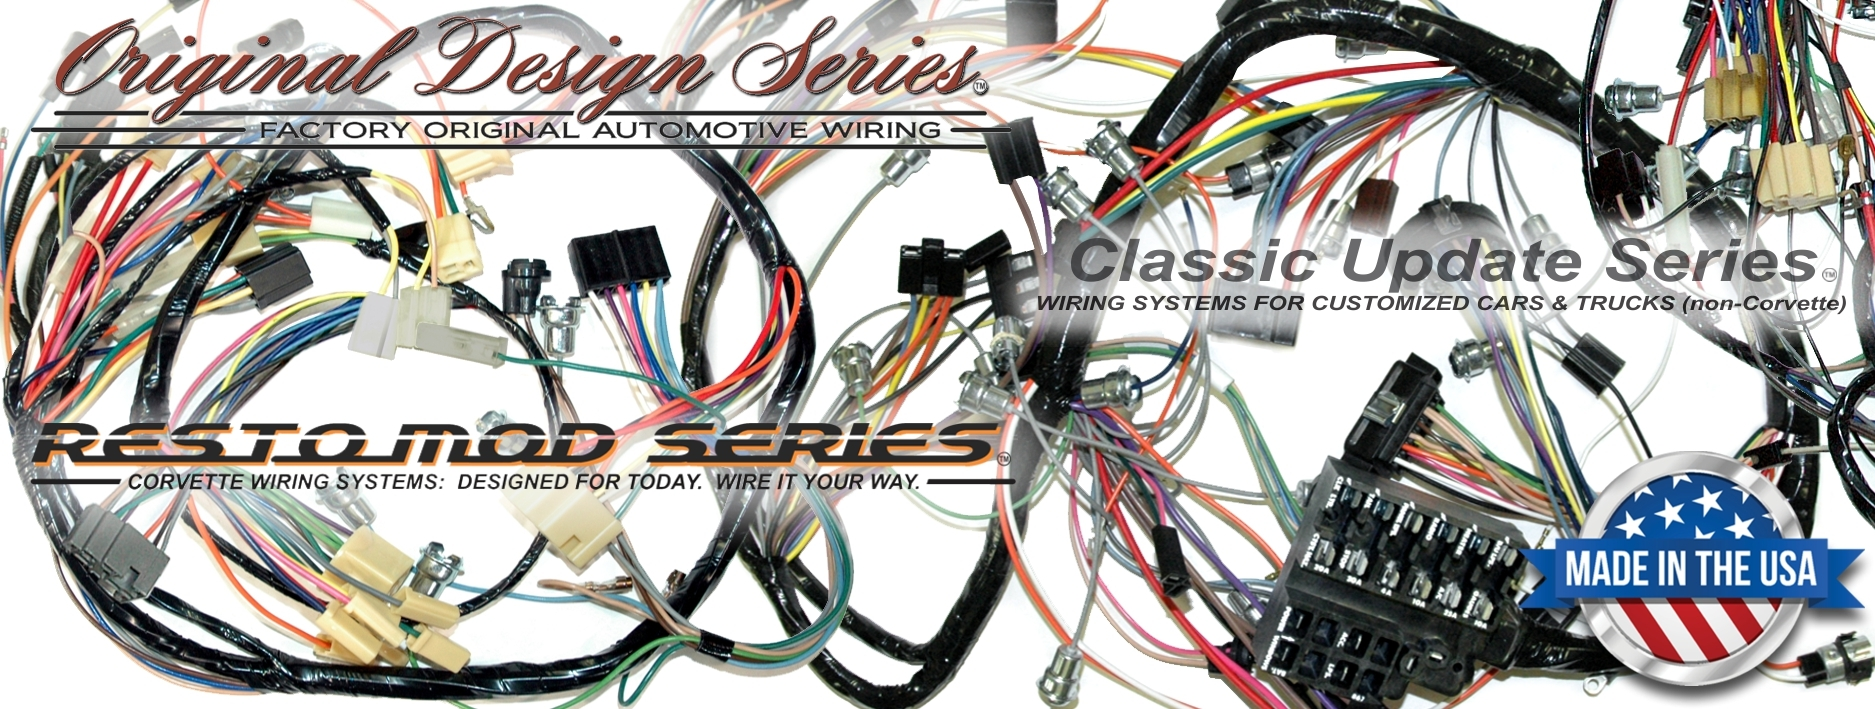 new header wiring_harnesses exact oem reproduction wiring harnesses and restomod wiring systems